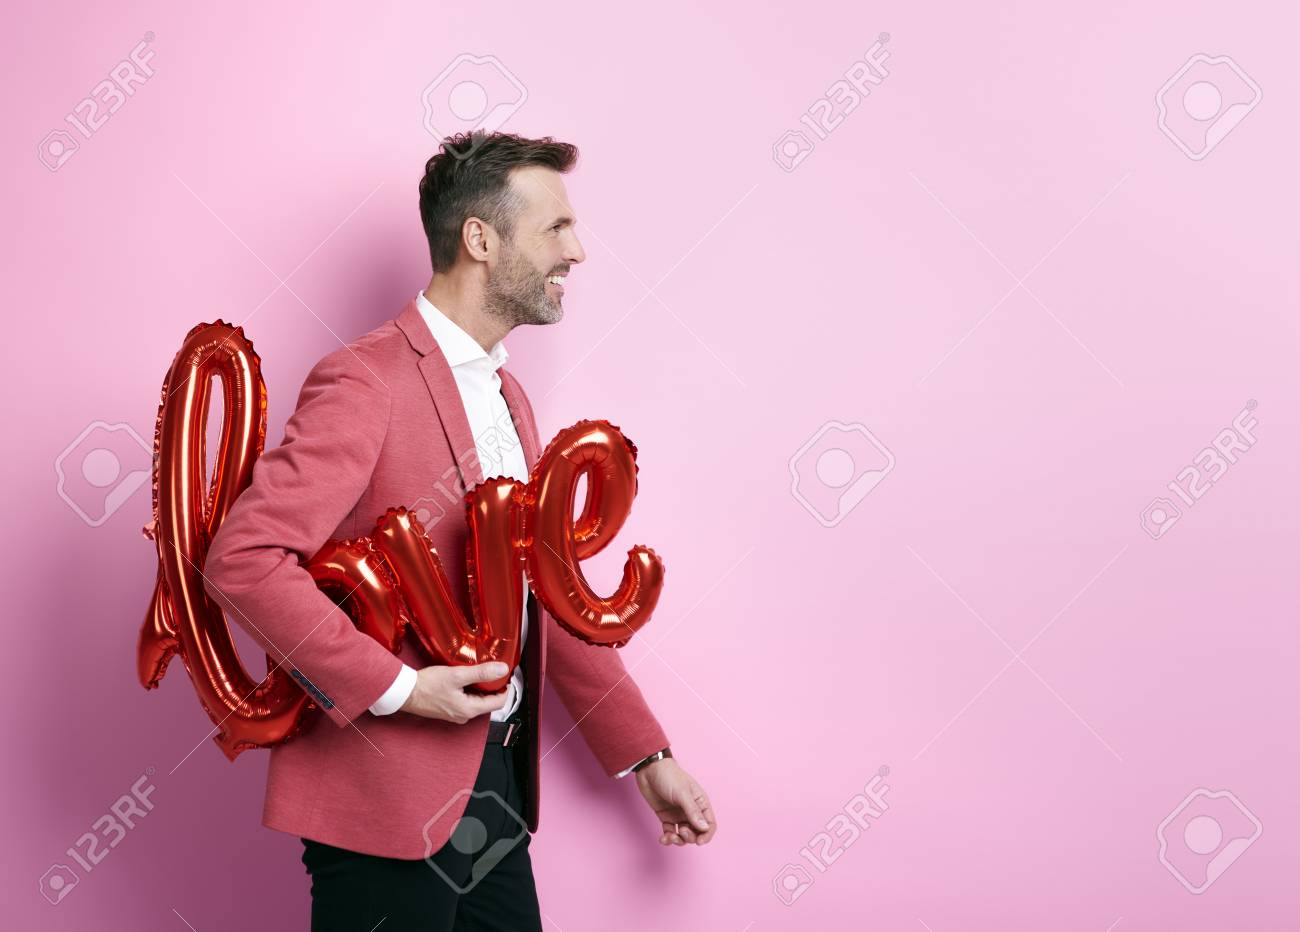 Cheerful man helping to preparing decorations for valentine's party - 89280198